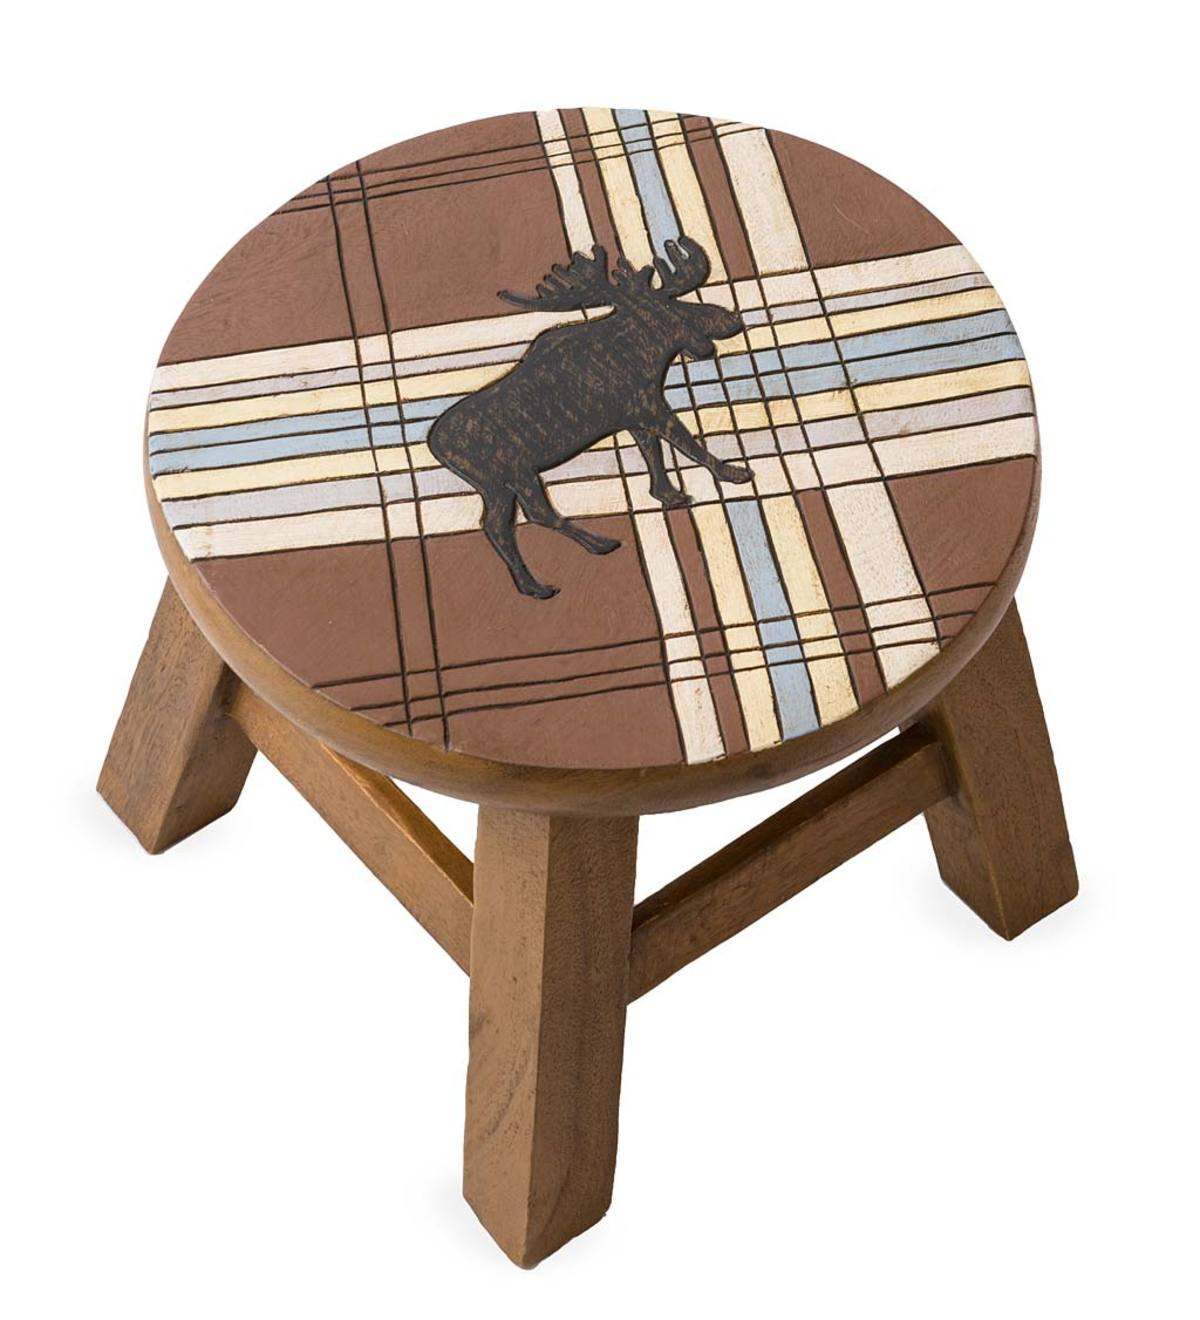 Hand-Carved Acacia Wood Moose with Stripes Footstool